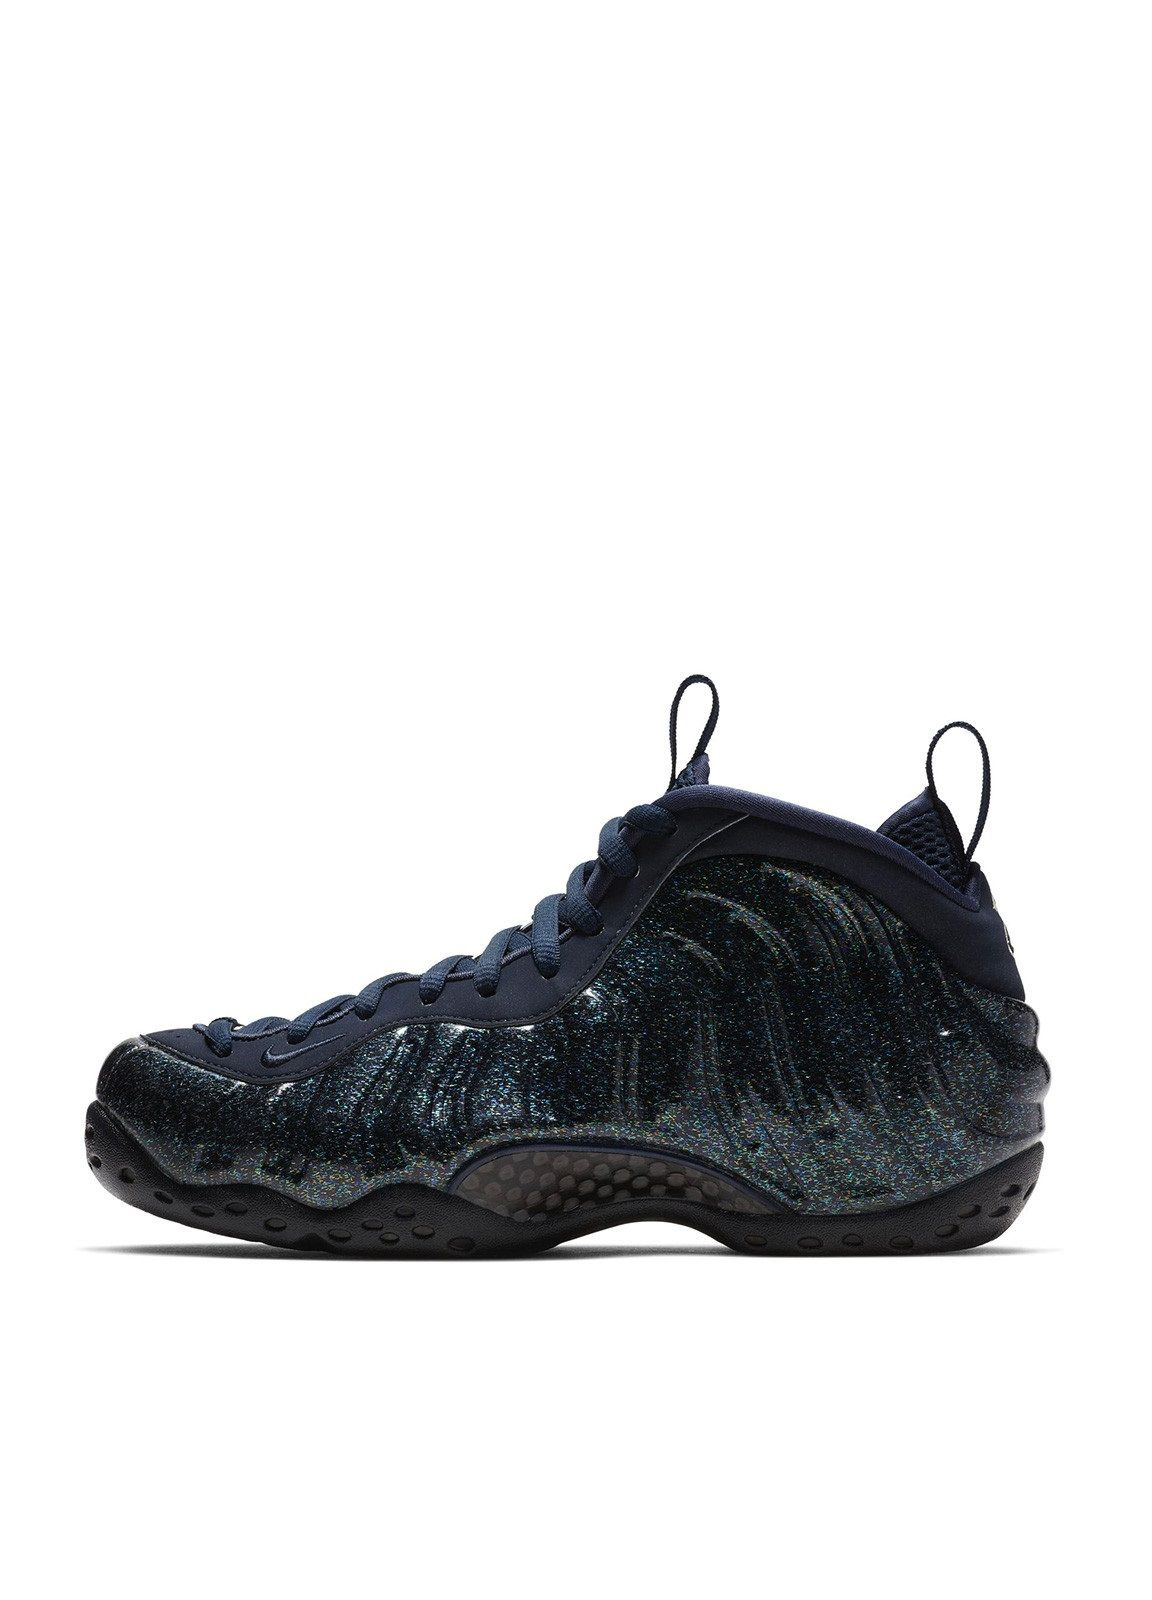 best authentic f292c 45c4a Nike Air Foamposite Pro  Obsidian Glitter